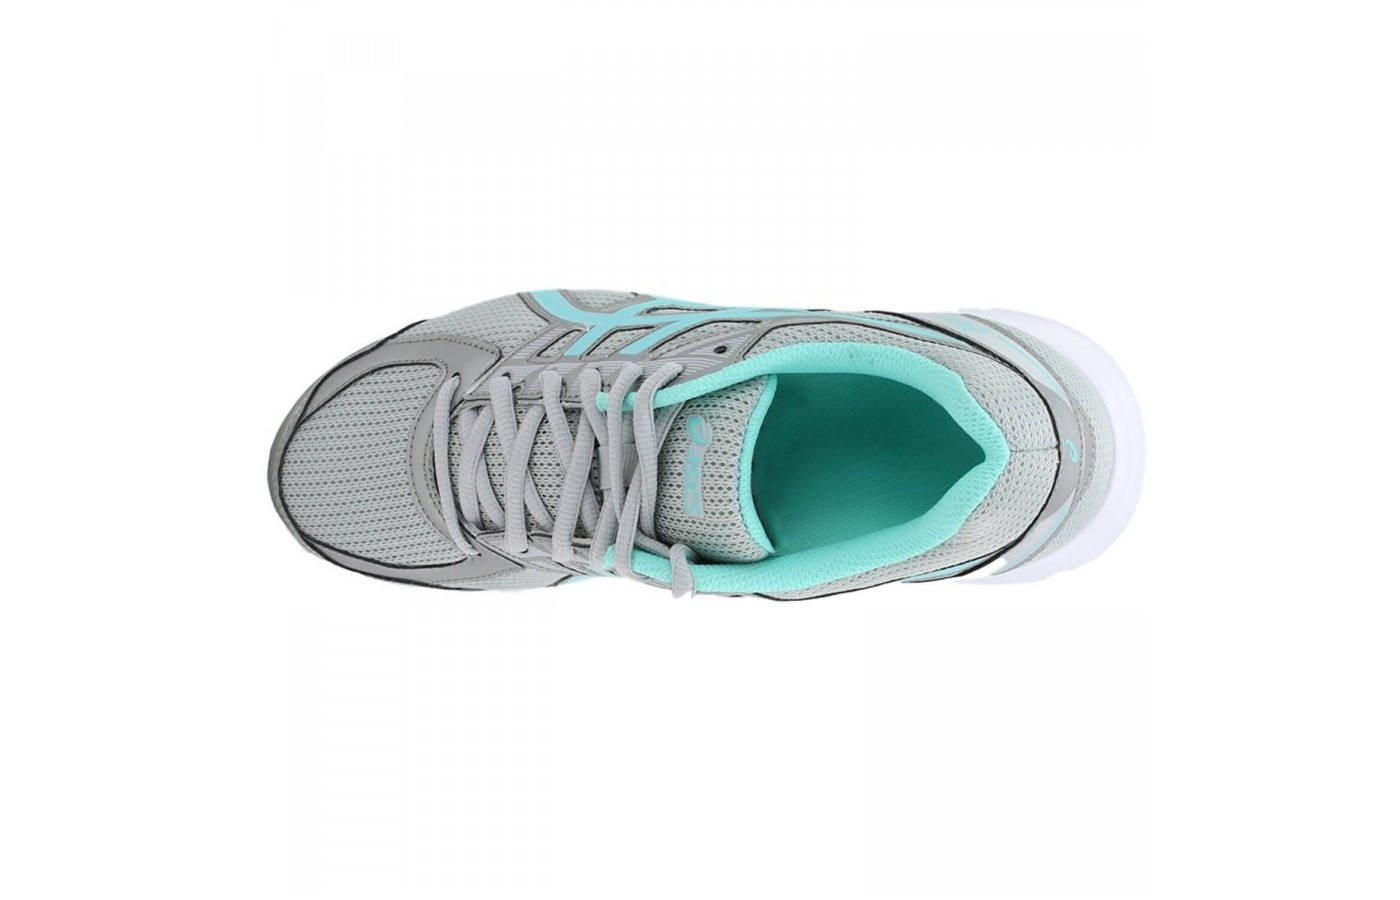 The shoe comes with a removable sock liner that can be replaced with a medical orthopedic if needed.